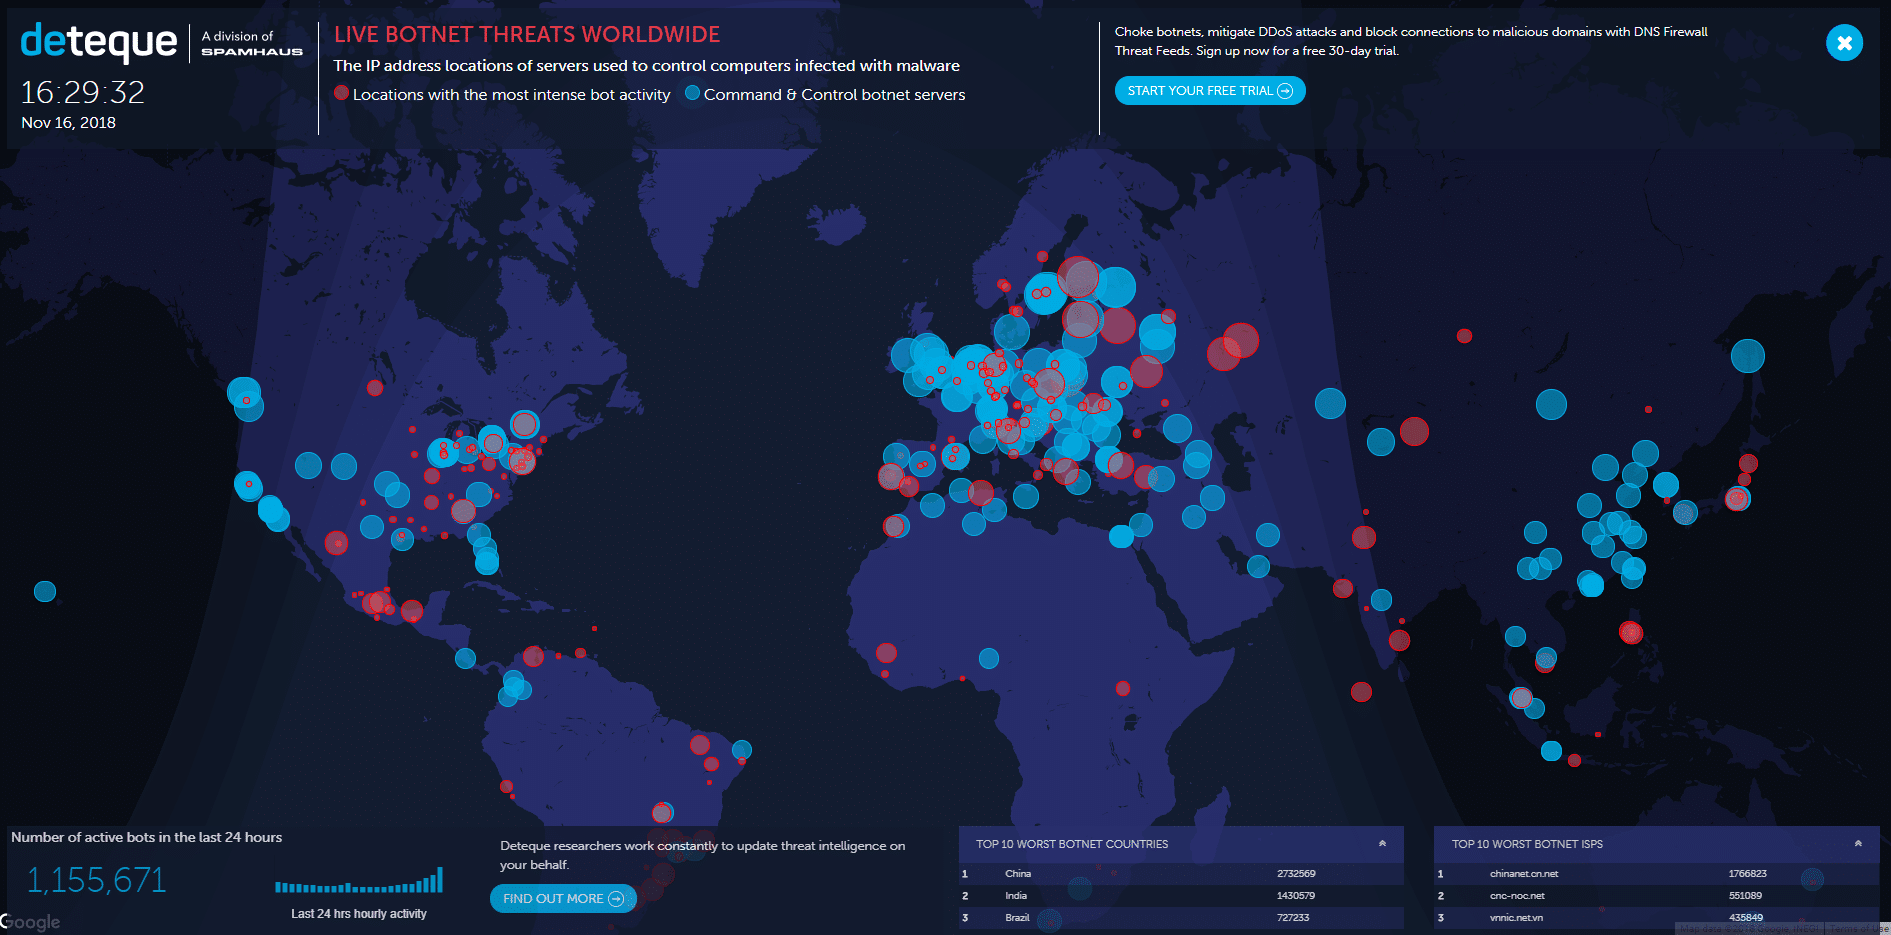 Cyber Attack Map by Deteque